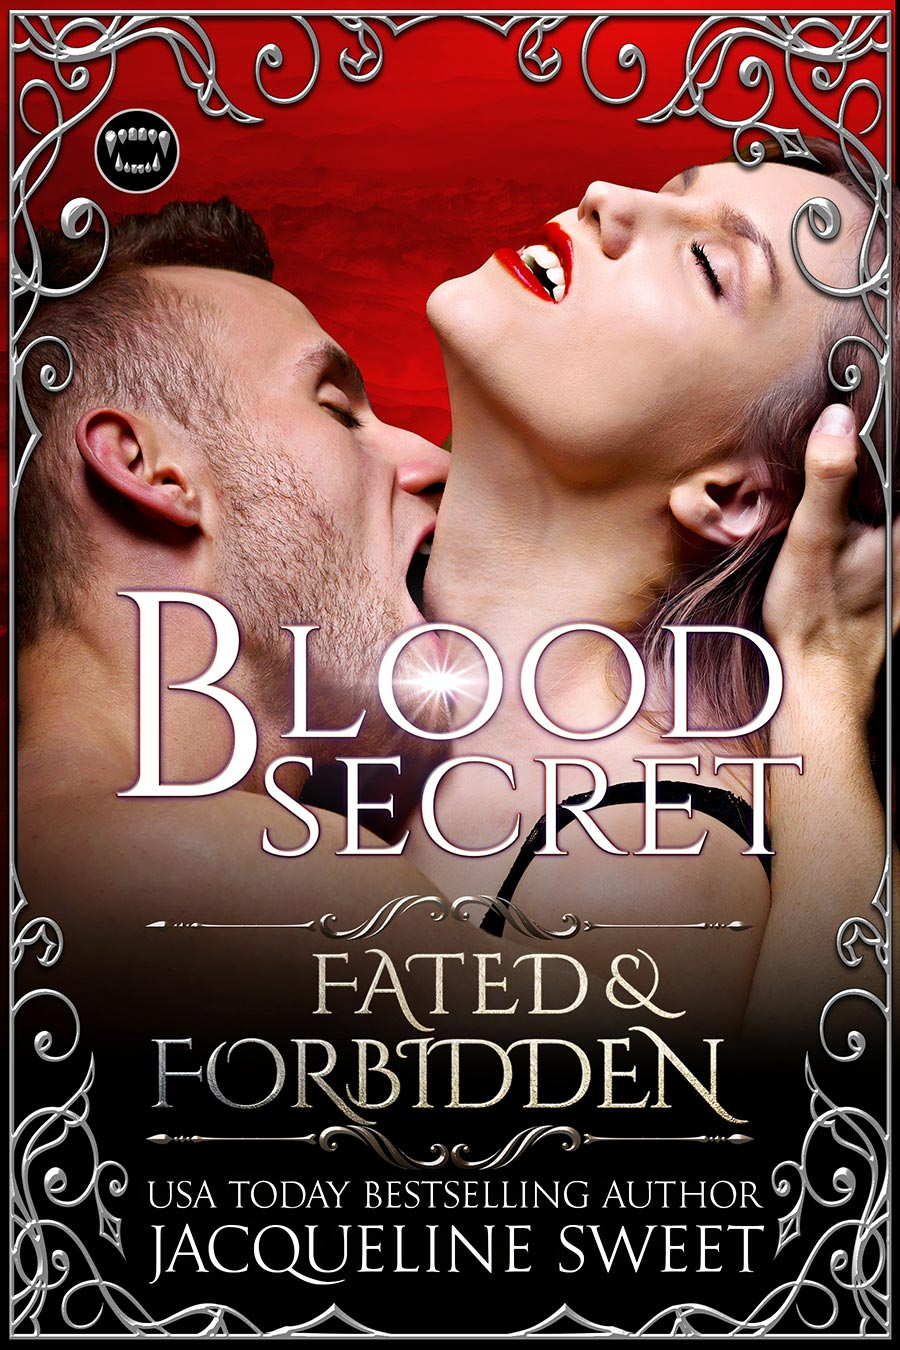 Fated-and-Forbidden---Blood-Secret---Jacqueline-Sweet---take-3.jpg